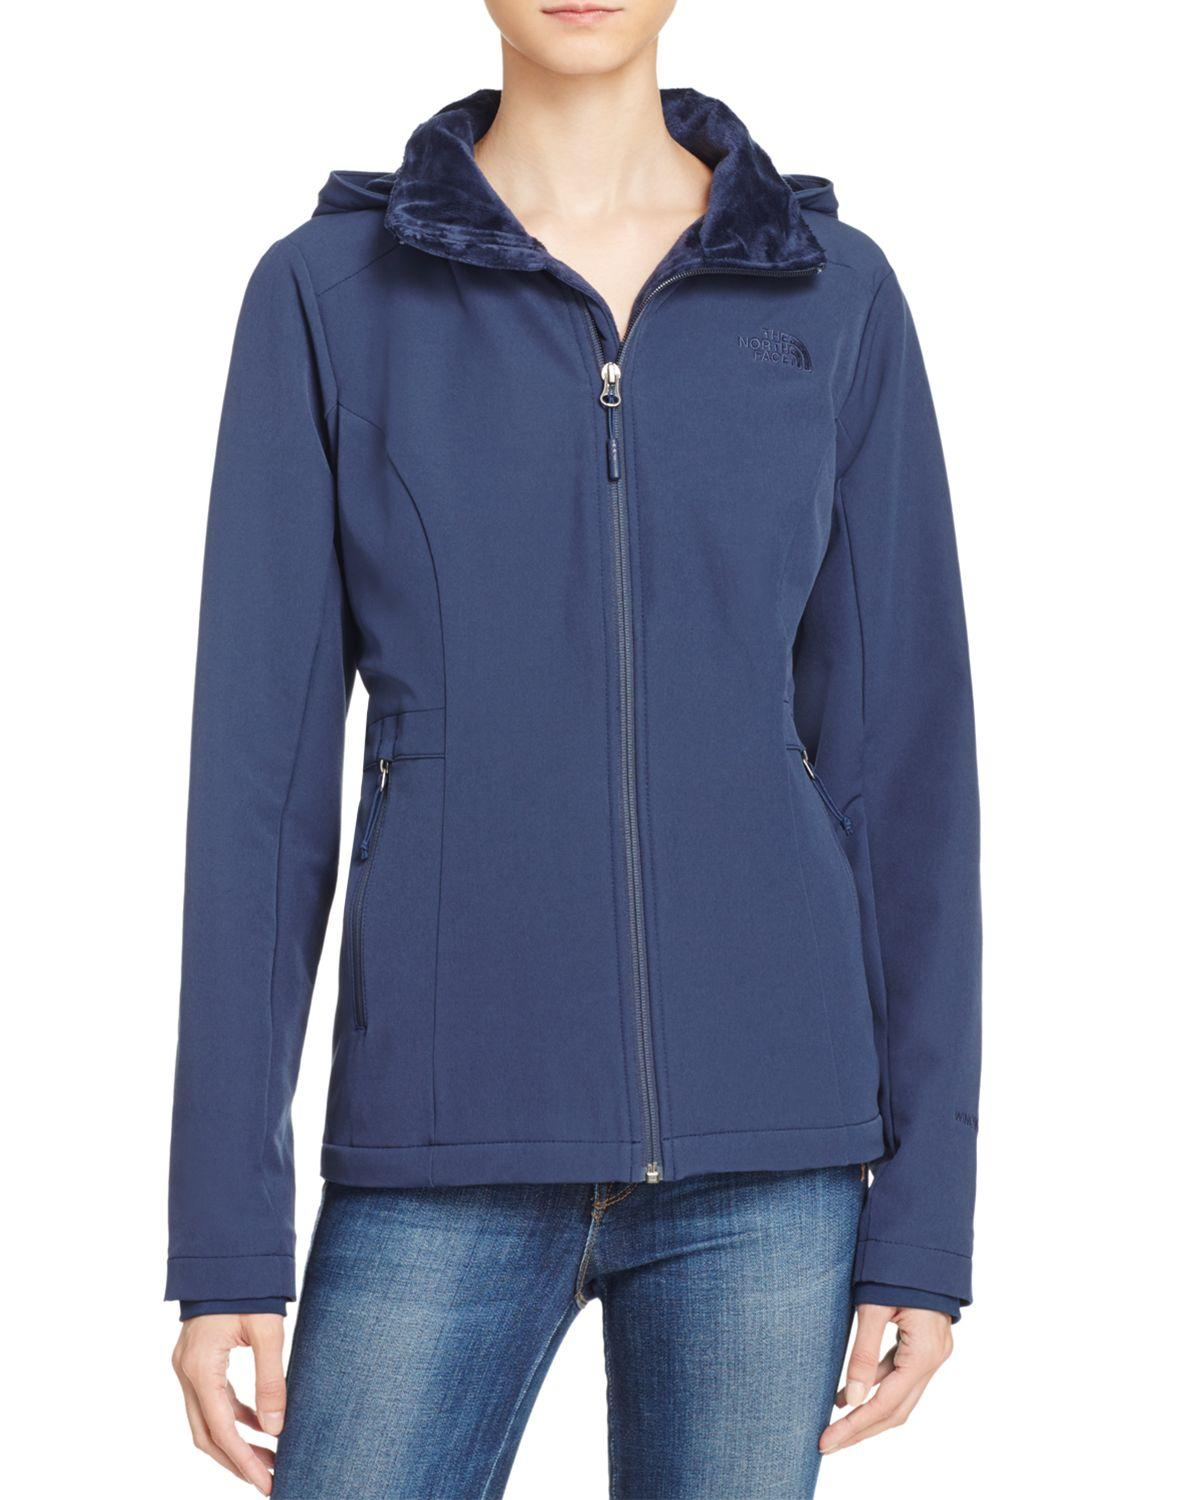 20f92602c The North Face Blue Shelbe Raschel Hoodie